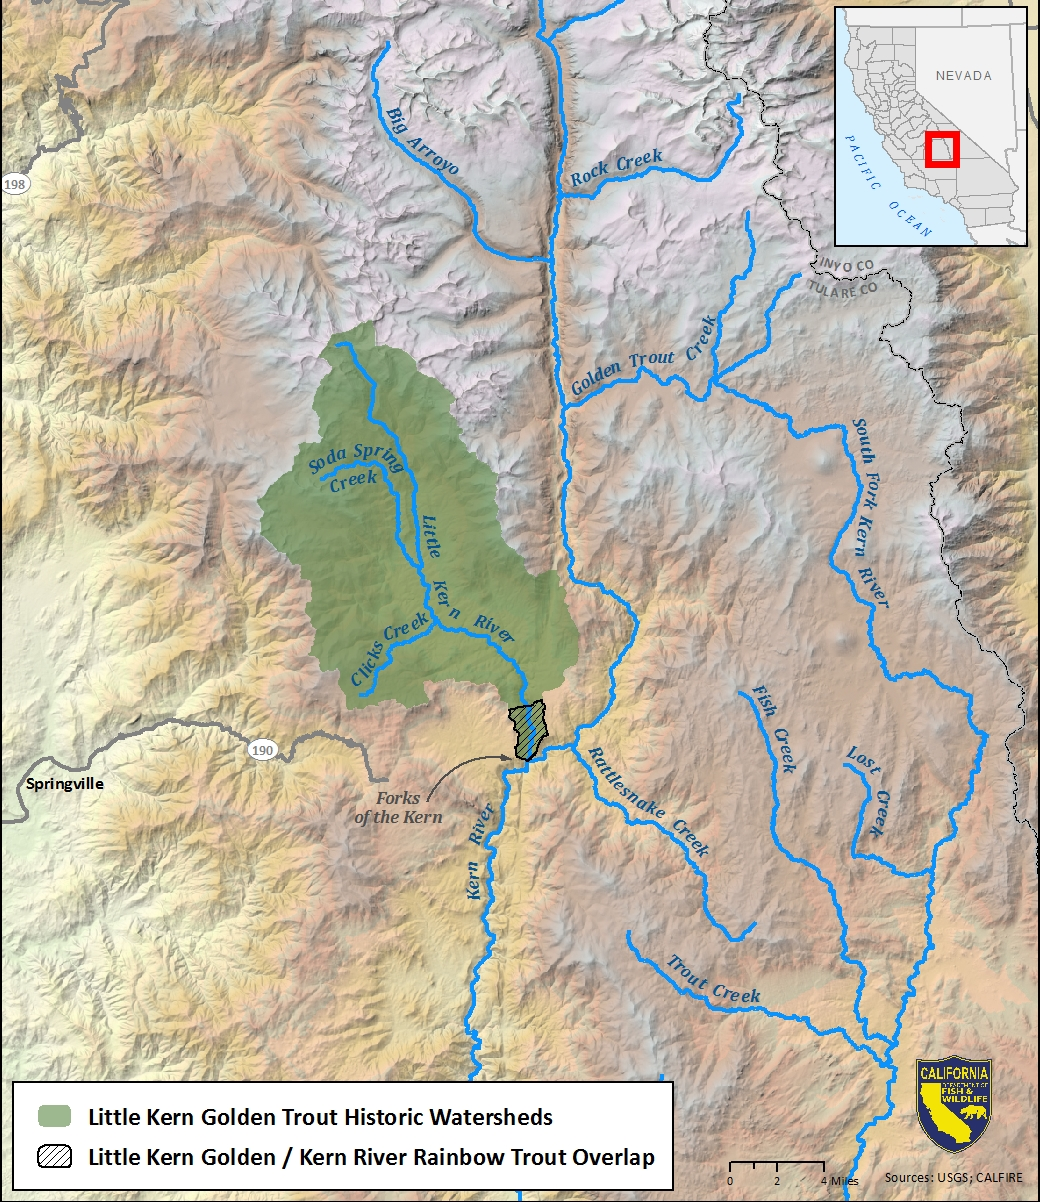 Map of Little Kern River historic watersheds-link opens in new window